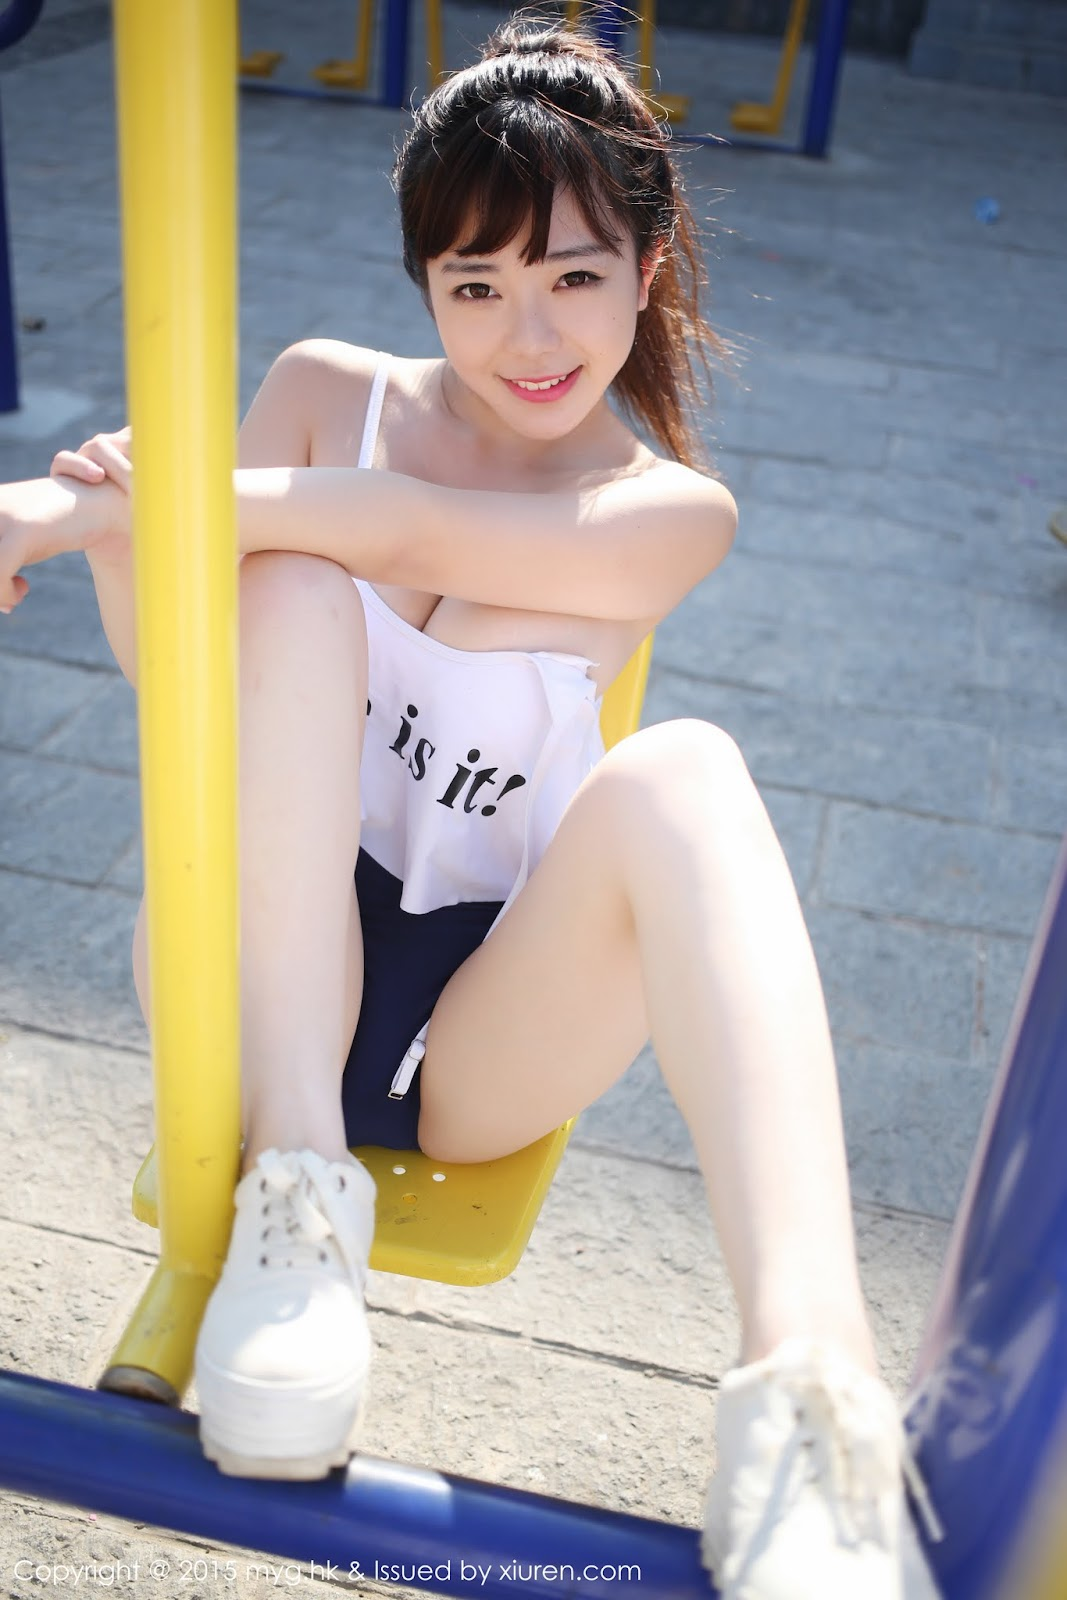 115%2B%252802%2529 - Sexy Girl MYGIRL VOL.115 FAYE